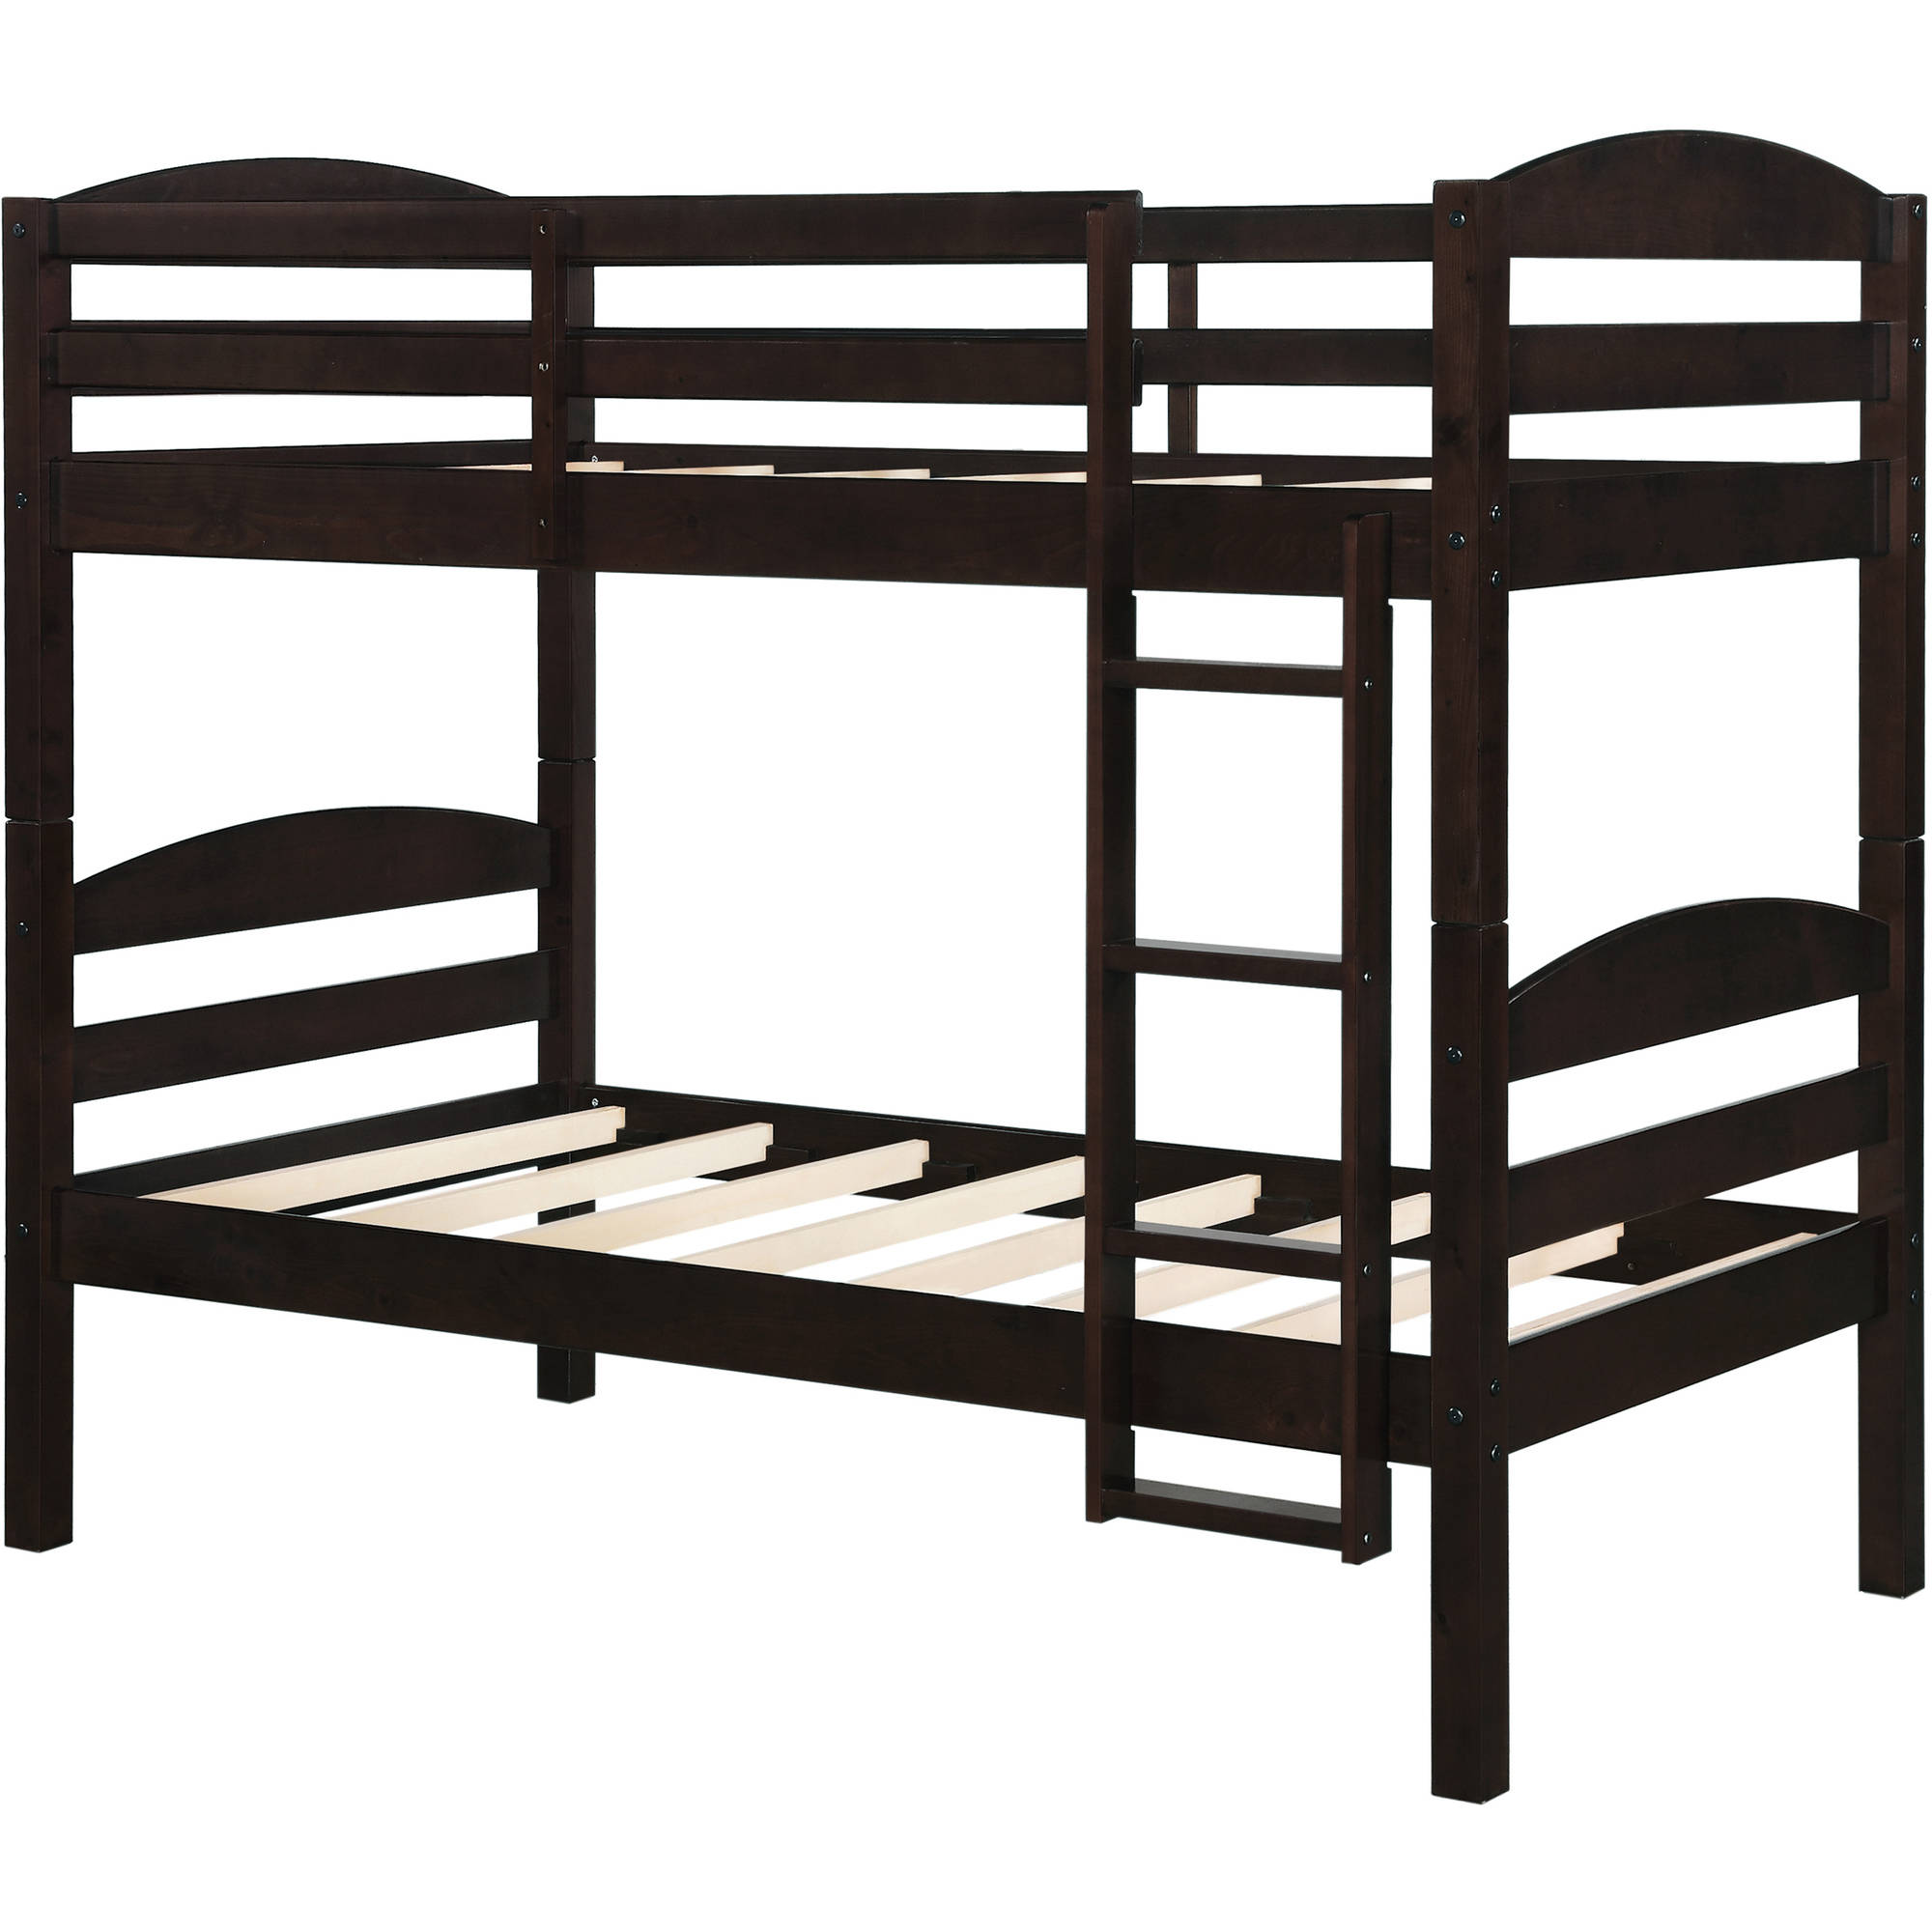 mainstays twin over twin wood bunk bed multiple finishes walmartcom